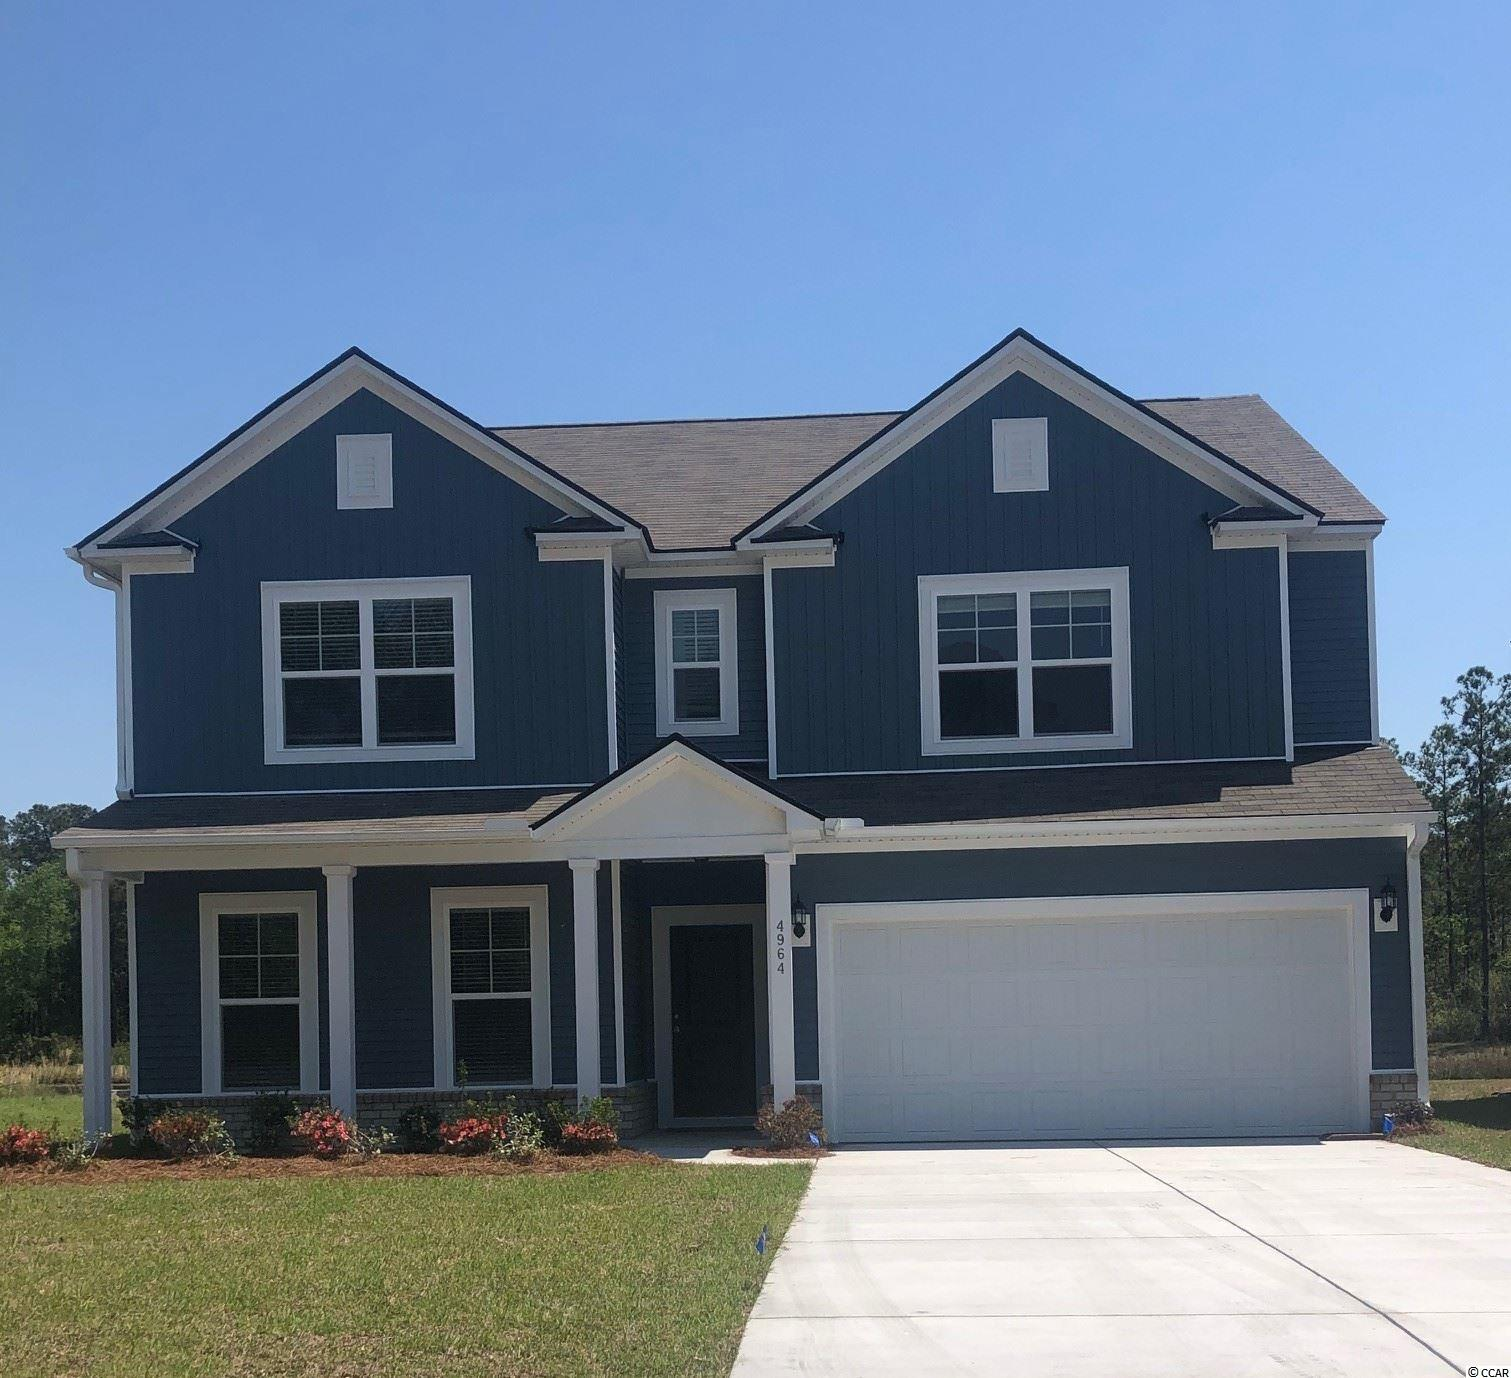 "This Mitchell home is 5BR / 3BA + extended Game Room. You'll love the large Owner's Suite with a bedroom-sized master closet. Double vanity, large linen closet, and walk in shower in Owner's Bath. This open kitchen has ample cabinet space, a roomy corner pantry, and the 9'6"" granite island is idyllic! Additional features are staggered cabinet design, stainless steel appliances, and LED lights. Upstairs is the Owner's Suite, 3 large bedrooms, and game room/loft for additional living space. We include an exceptional 10yr Home Warranty with 5-year water infiltration and leak protection as well as great incentives for working with preferred lender. ...ask for details! This ""tucked away"" section in Clear Pond offers a unique feel and natural setting...a great location within the community.  Completed Clear Pond amenities include 2 swimming pools, fitness center, playground, clubhouse, open green space, and walking paths. This community is conducive to biking, walking, and golf cart rides...a fantastic place to call home! Clear Pond community offers close proximity to everyday shopping, restaurants, recreation, and entertainment and is only 10 miles to the beach. Carolina Forest Schools.  Photos are of a model home for representational purposes only, and may show different options and upgrades selected."